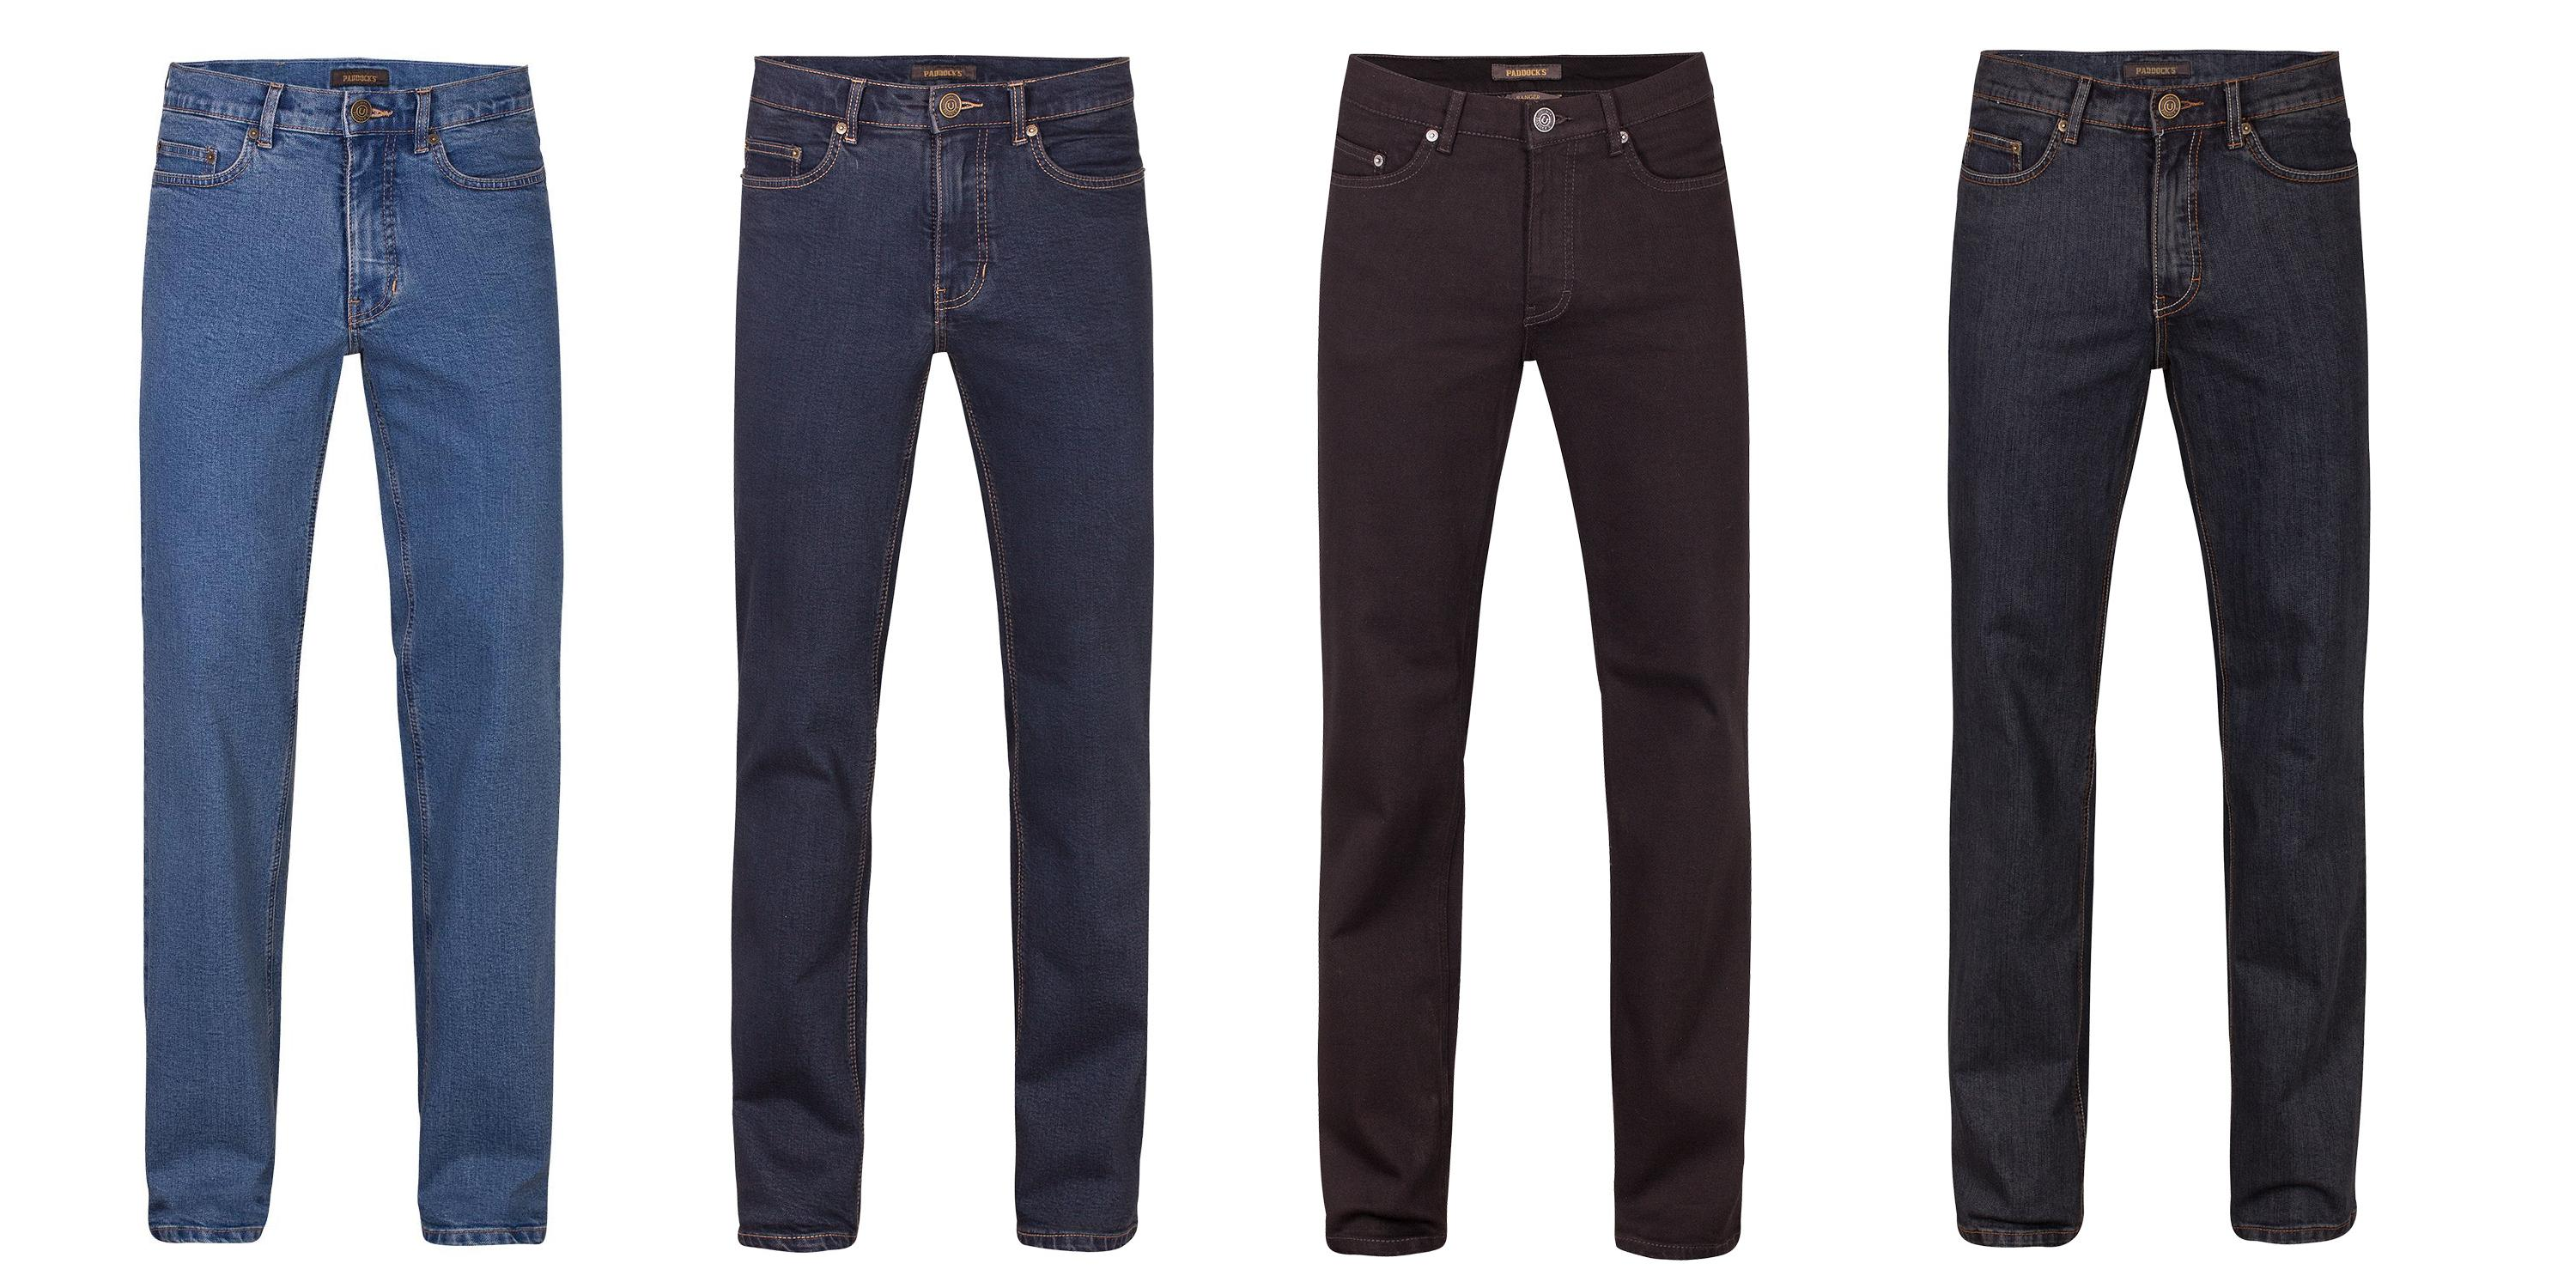 Paddocks Ranger slim fit 46.43., 47.01., 60.01., 91.16. Herrenjeans, Hose